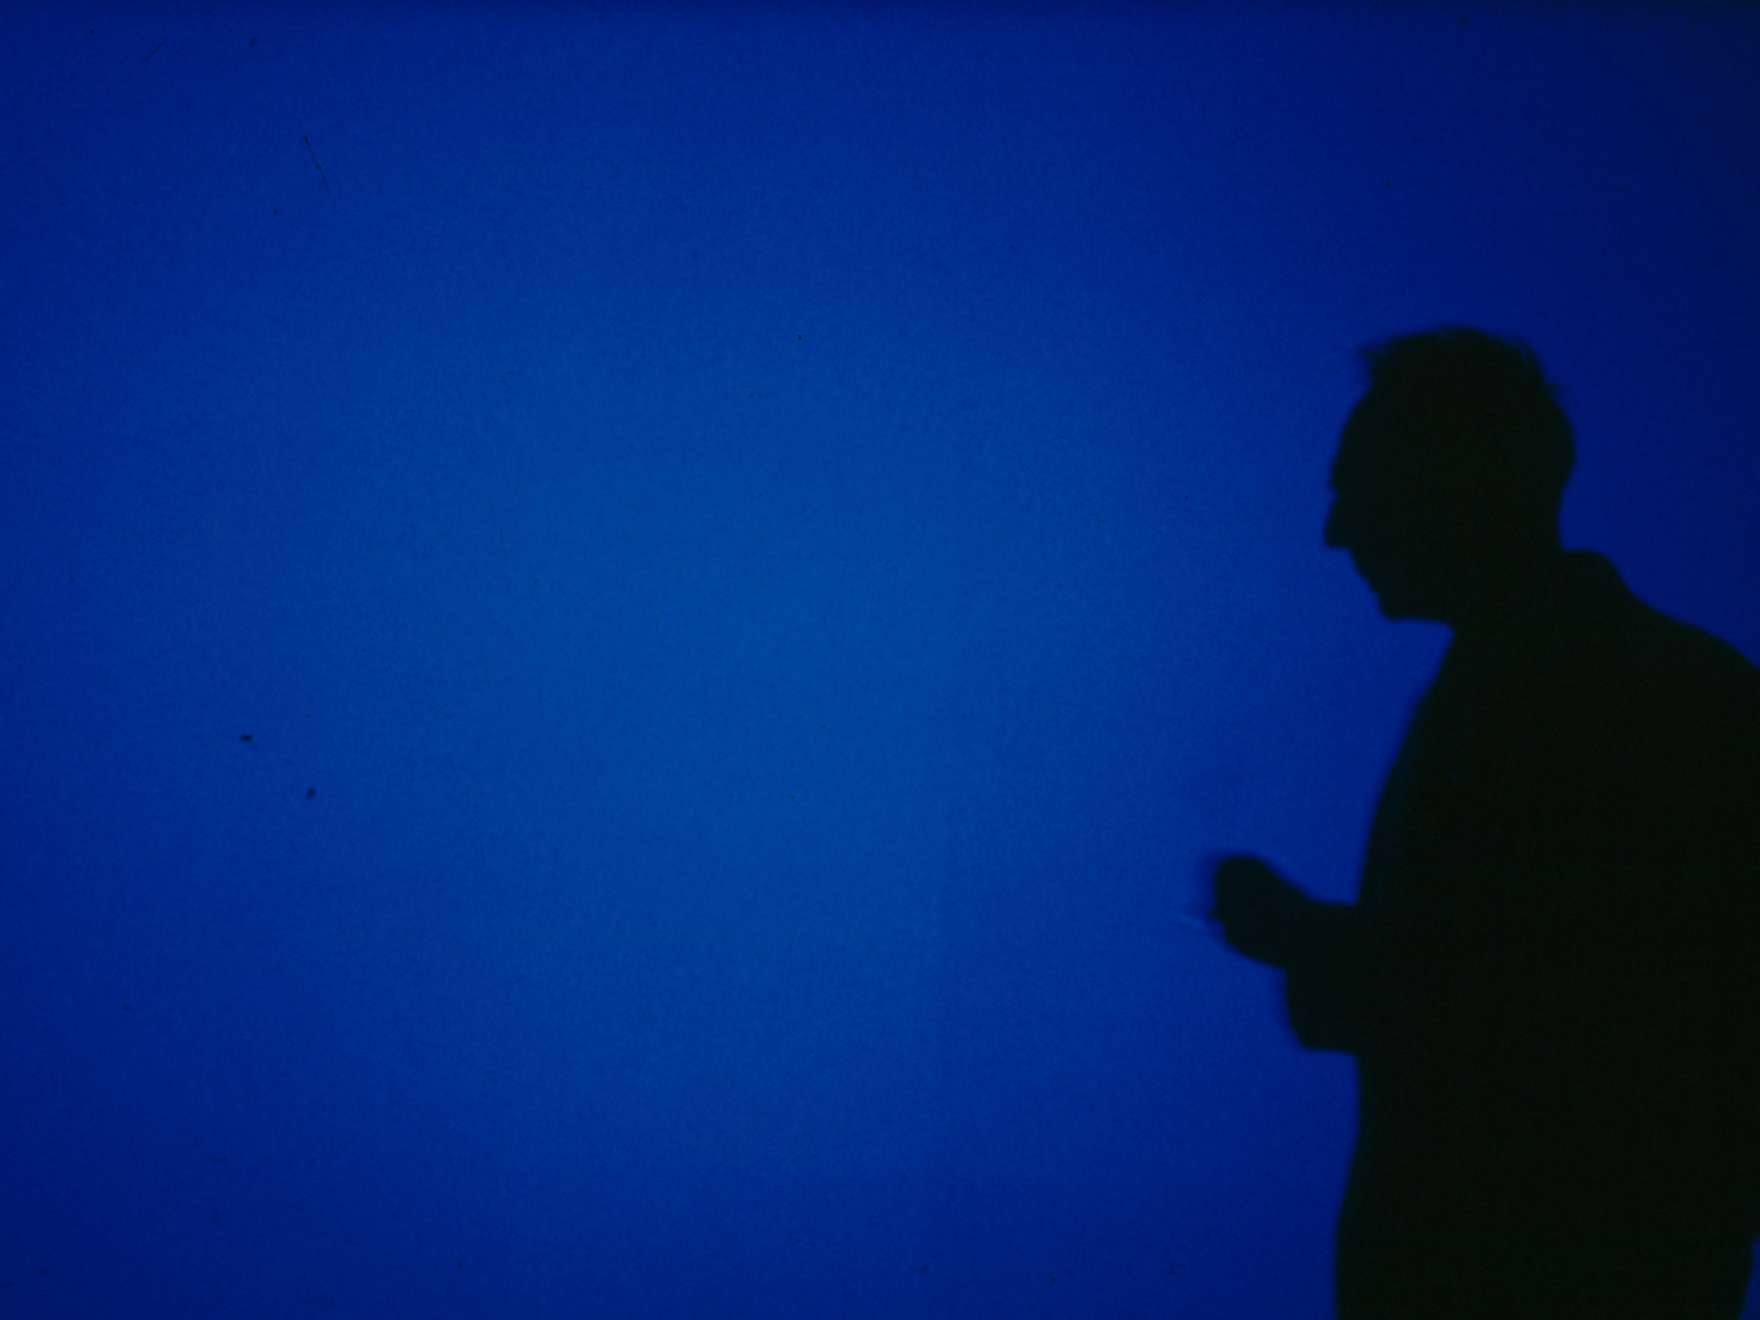 Silhouette of Derek Jarman in front of his projected film, Blue